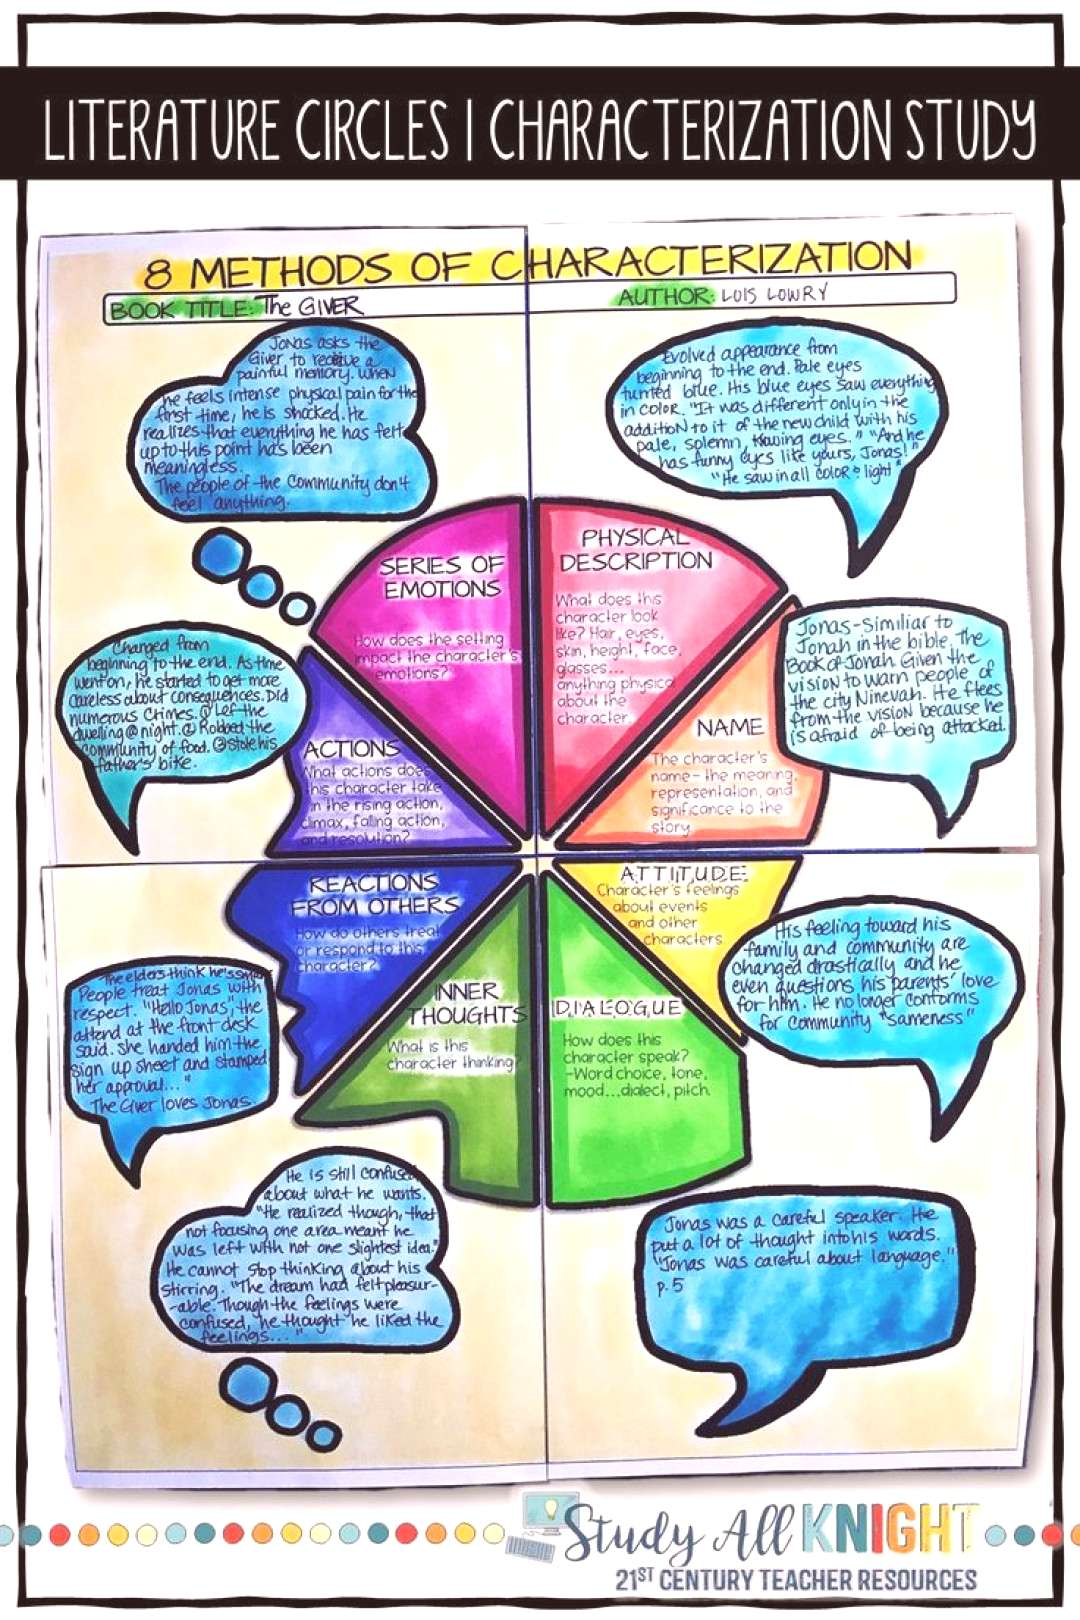 Literature Circles, Characterization Poster for Any Novel or Short Story - -